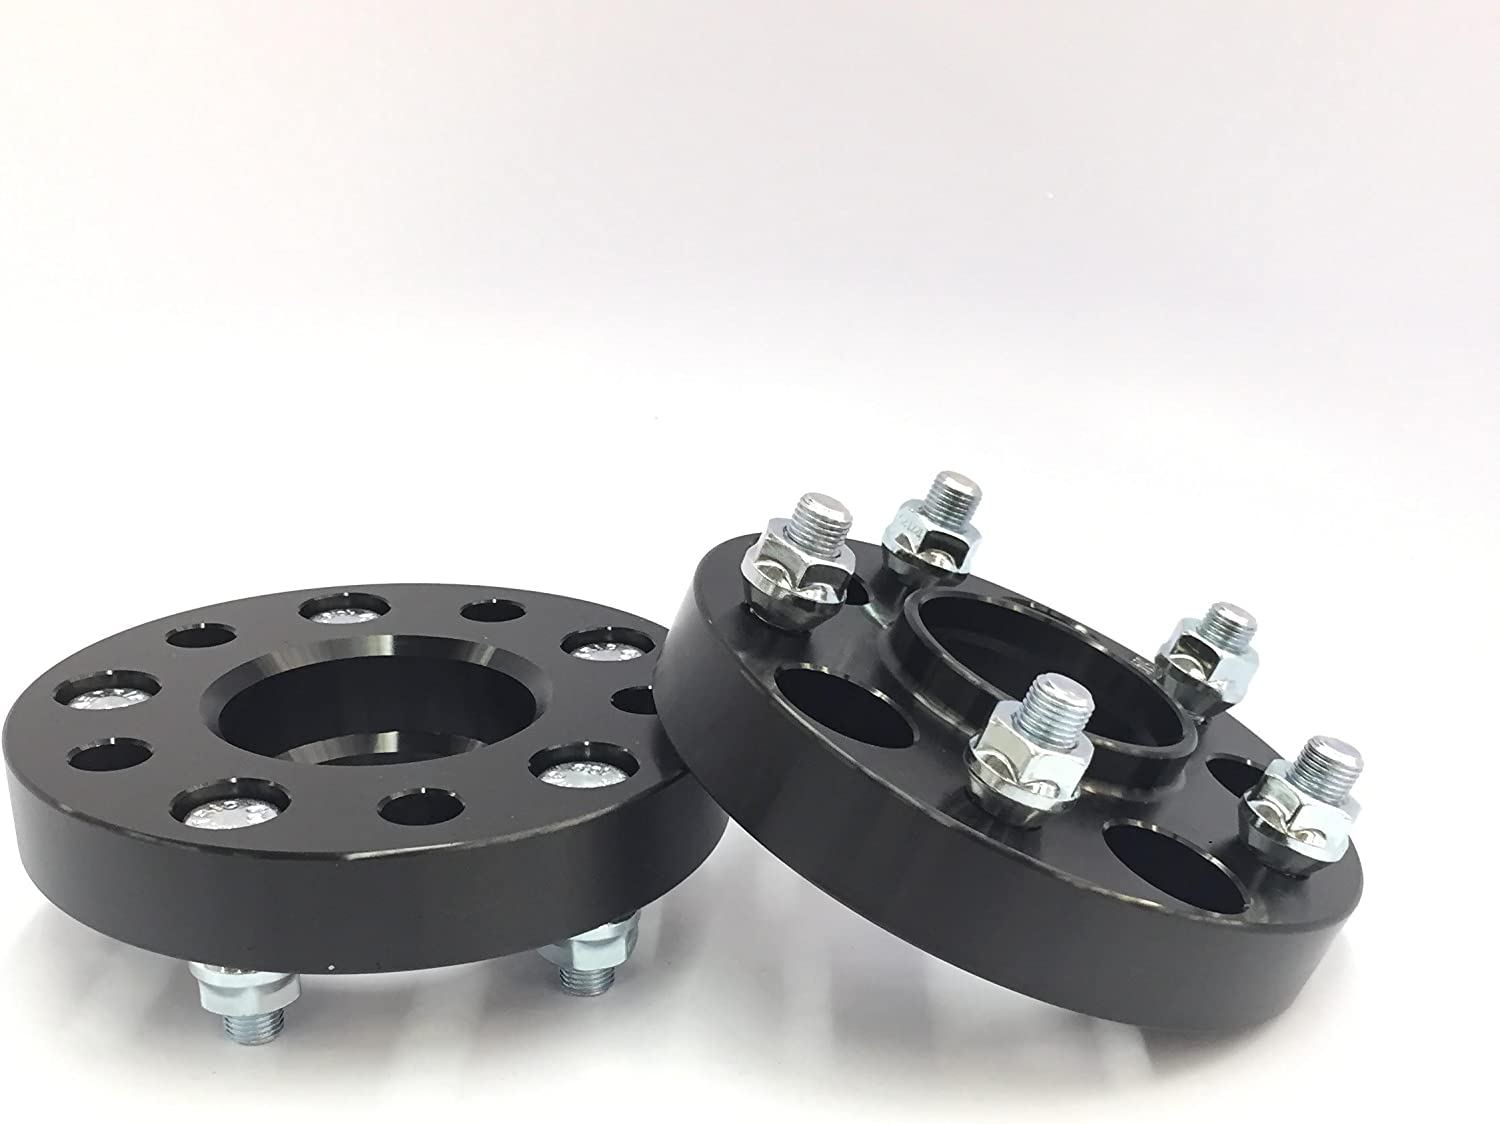 """Customadeonly 2 Pieces 1"""" (25mm) Black Hub Centric Wheel Spacers Bolt Pattern 5x120 Bore 72.6mm Thread Pitch 14x1.5 Studs Fits Range Rover 1996-2018, LR3 2005-2009, LR4 2010-2016"""